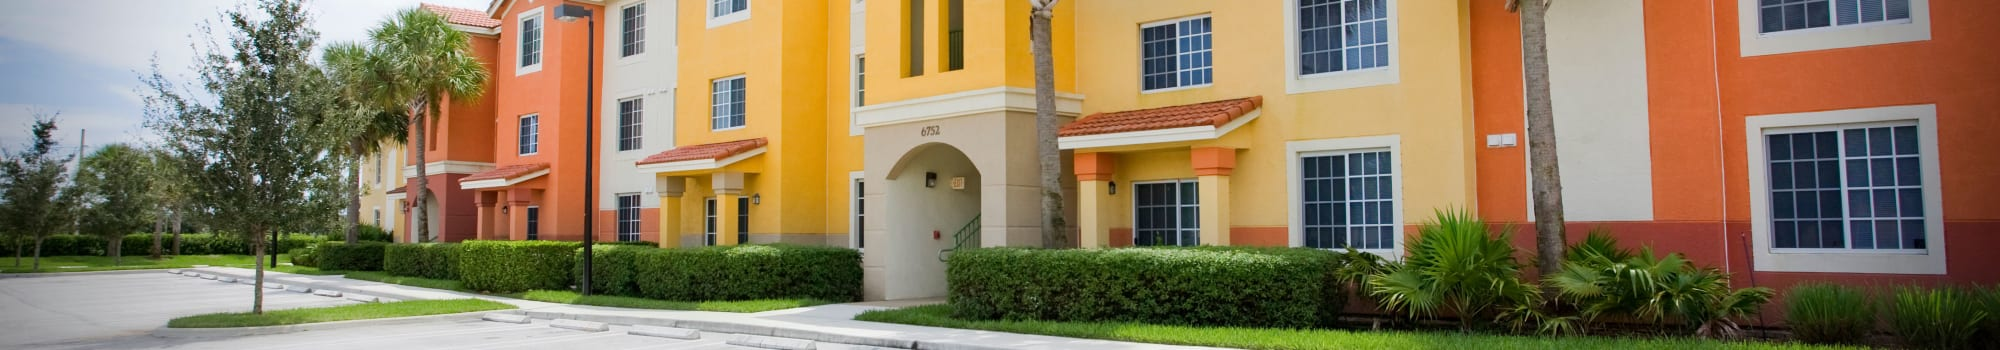 Apply at Green Cay Village in Boynton Beach, Florida